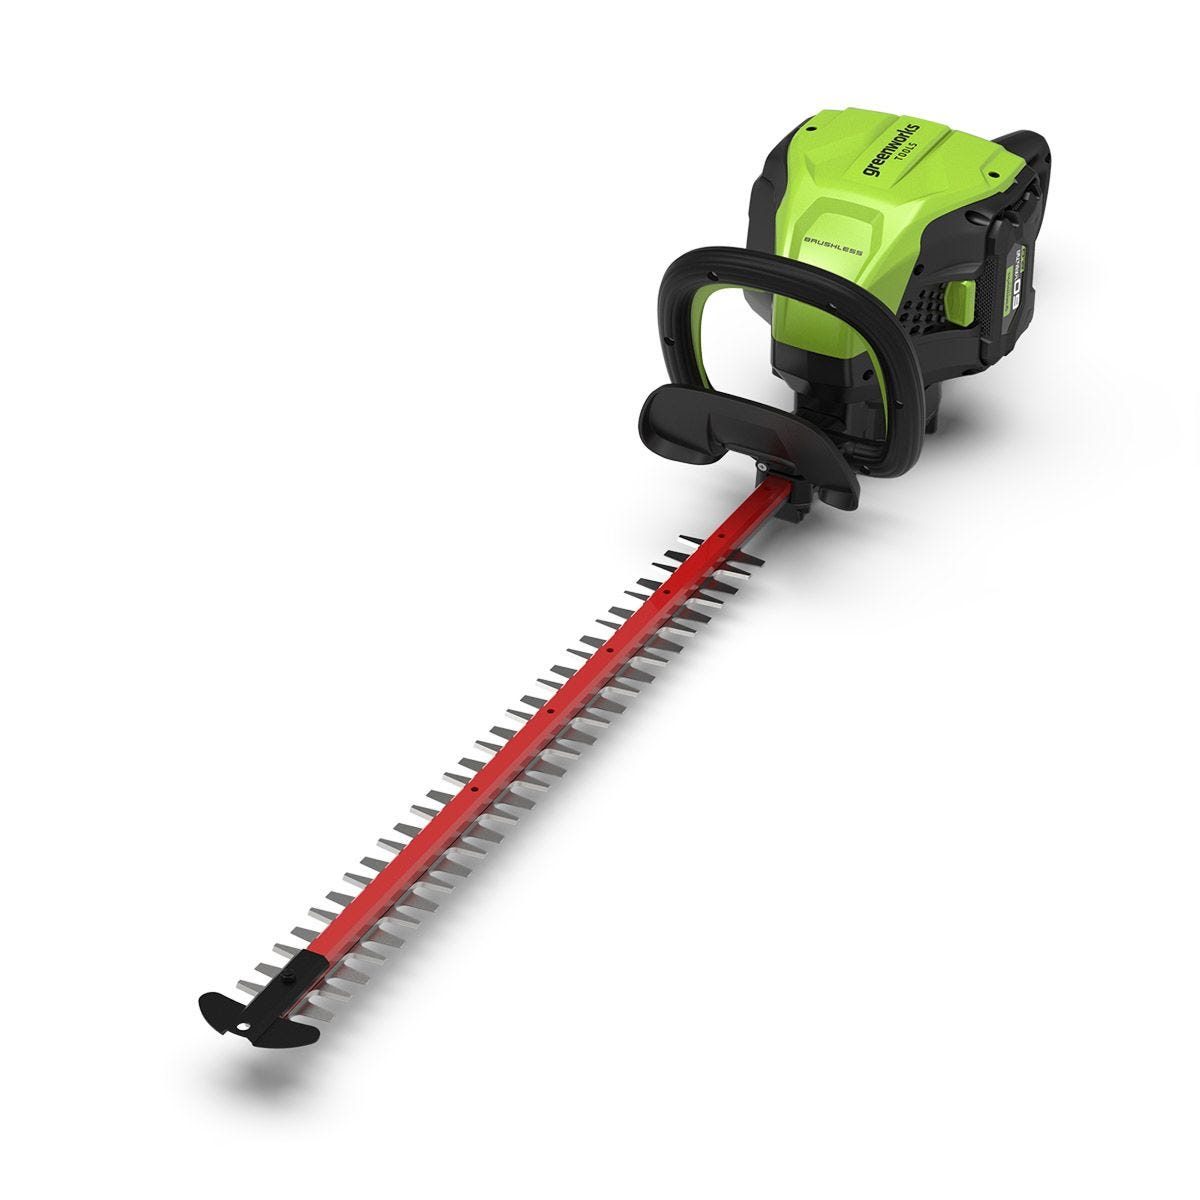 Greenworks 60V DigiPro 54cm Cordless Hedge Trimmer (Tool Only)